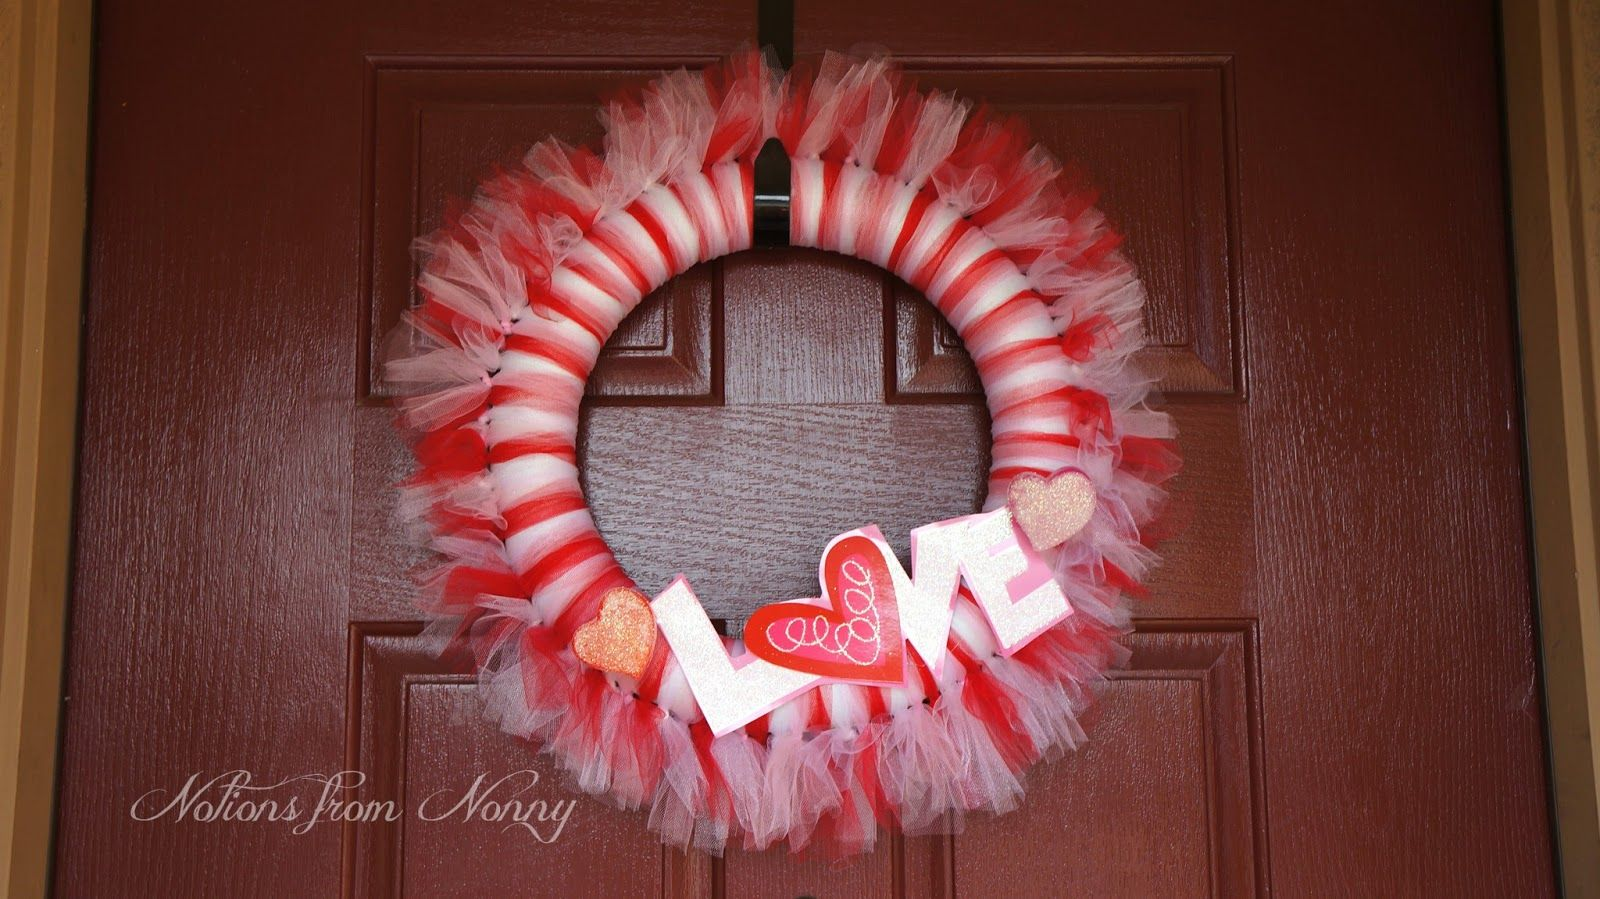 Notions from Nonny: Valentine's Day Tulle Wreath